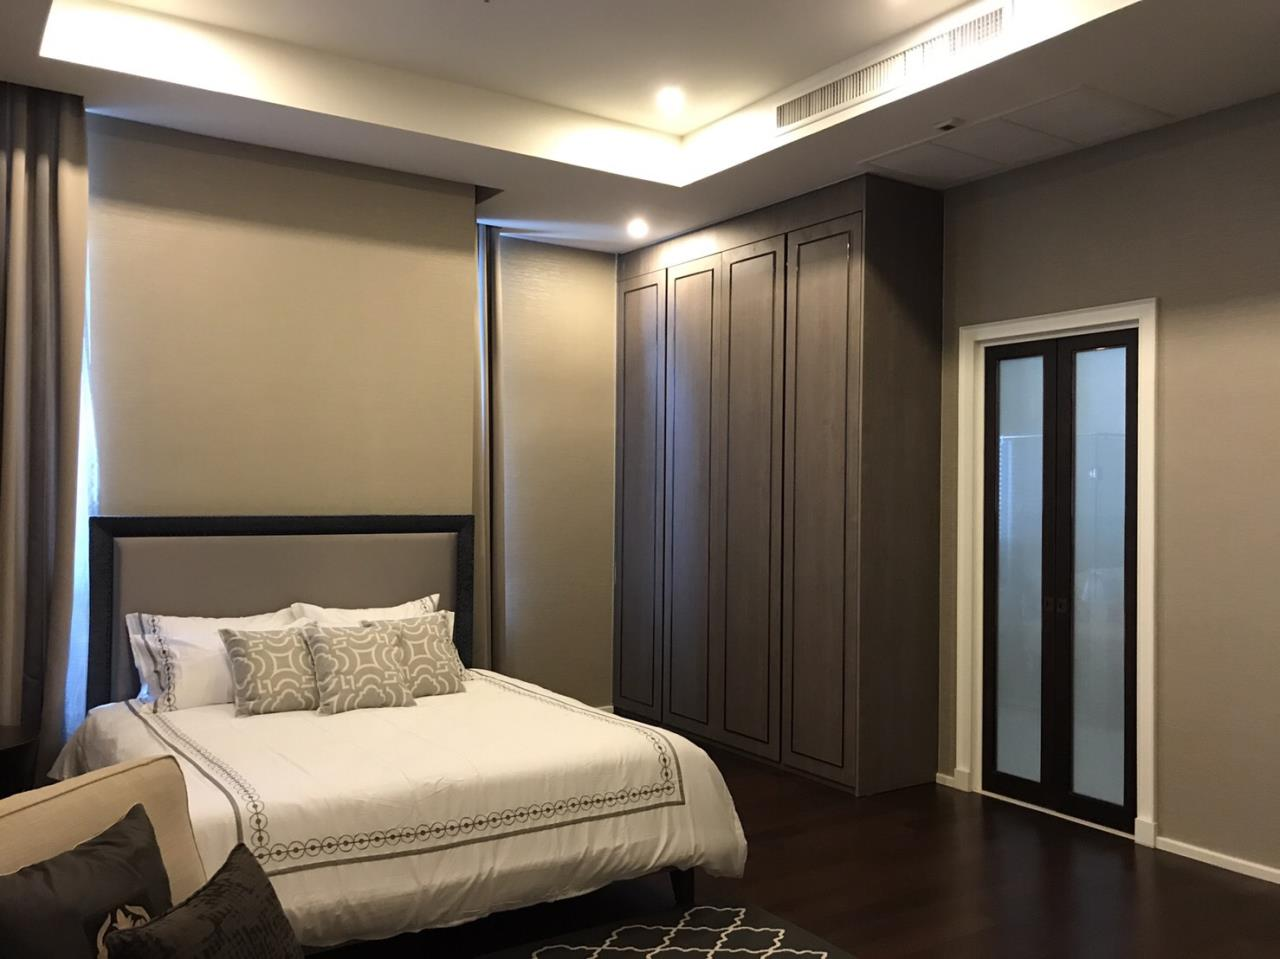 Siam Prop Agency's The Capital Ekamai - Thonglor Condo, 2 bedrooms Penthouse for rent with 4-meter ceiling height 9